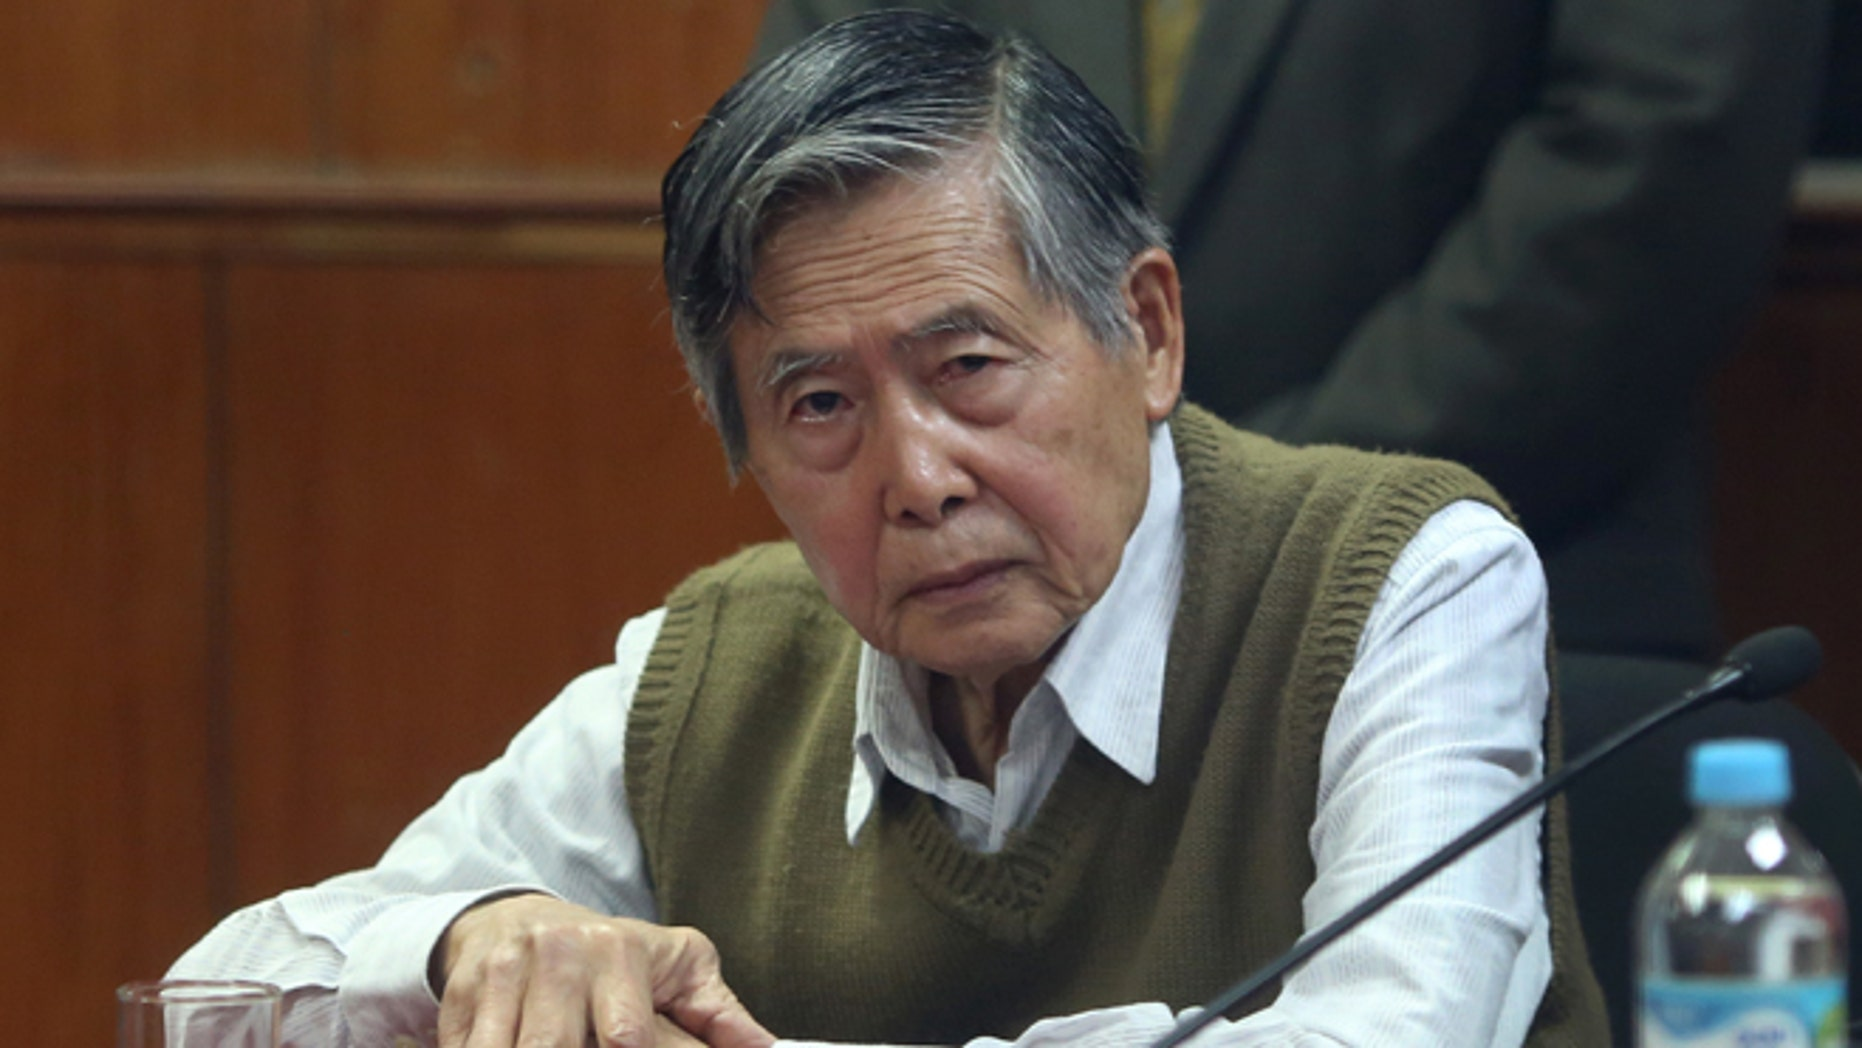 FILE - In this Oct. 29, 2013 file photo, jailed former President Alberto Fujimori attends a hearing at a police base on the outskirts of Lima, Peru. Many of the nations rural, indigenous poor have flocked to the support of his daughter Keiko, who is running for president, grateful for her fathers success in routing guerrillas who preyed on their communities. But tens of thousands have marched in the streets of the capital against the return of any Fujimori, haunted by the memory of the elders bloody crackdown on dissent and corrupt government, which have him serving 25 years in prison. Peru holds its presidential election on June 5, 2016.  (AP Photo/Martin Mejia, File)